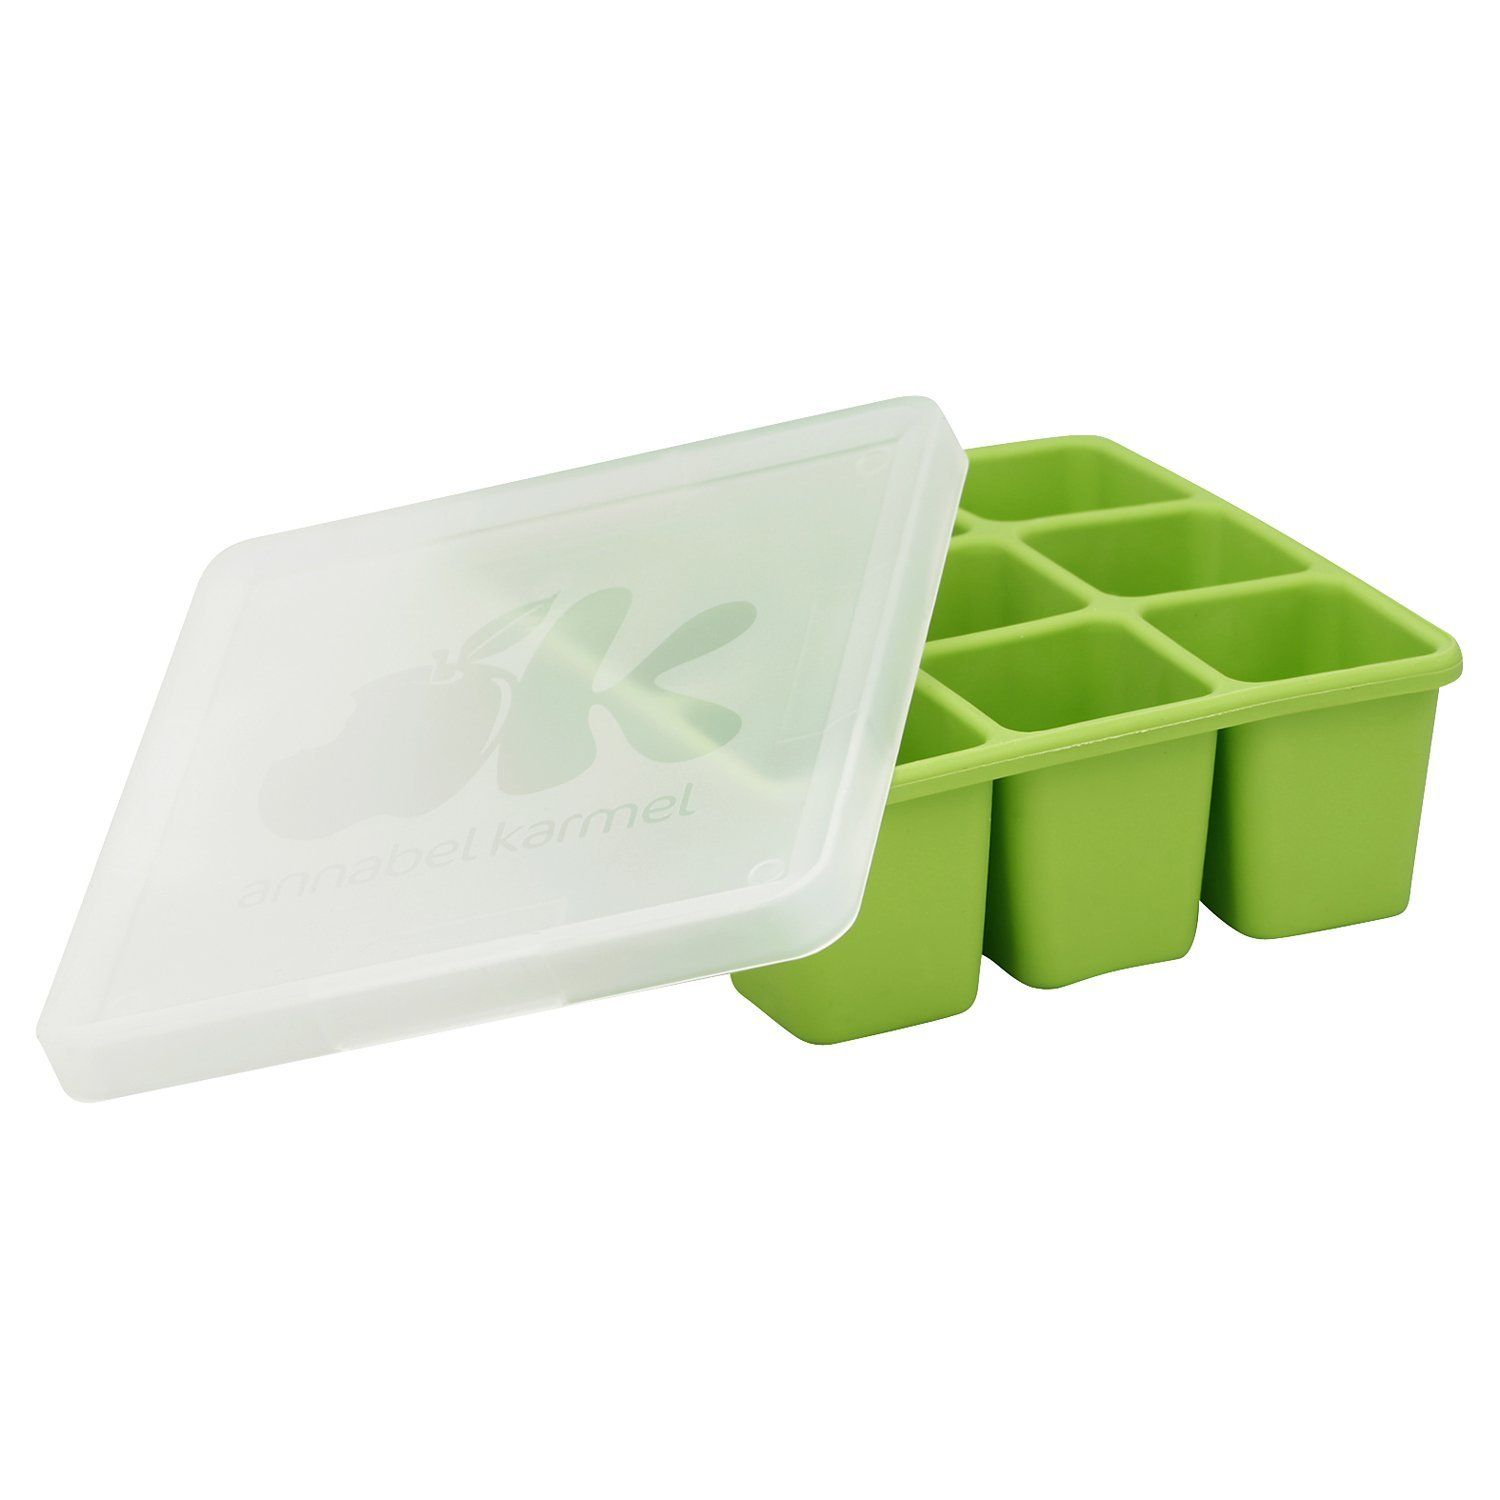 These Compact Freezer Trays From The Annabel Karmel X Freshfoods